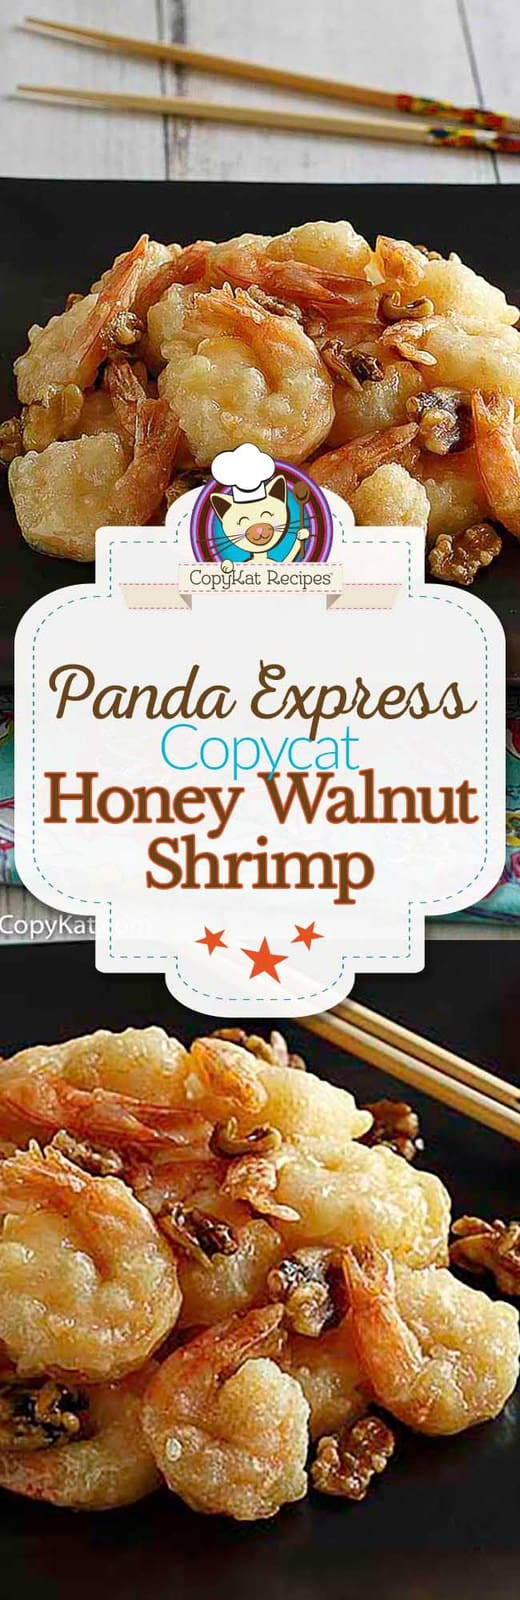 You can recreate the Panda Express Honey Walnut Chicken at home with this easy copycat recipe.  #copycat #copycatrecipe #shrimp #pandaexpress